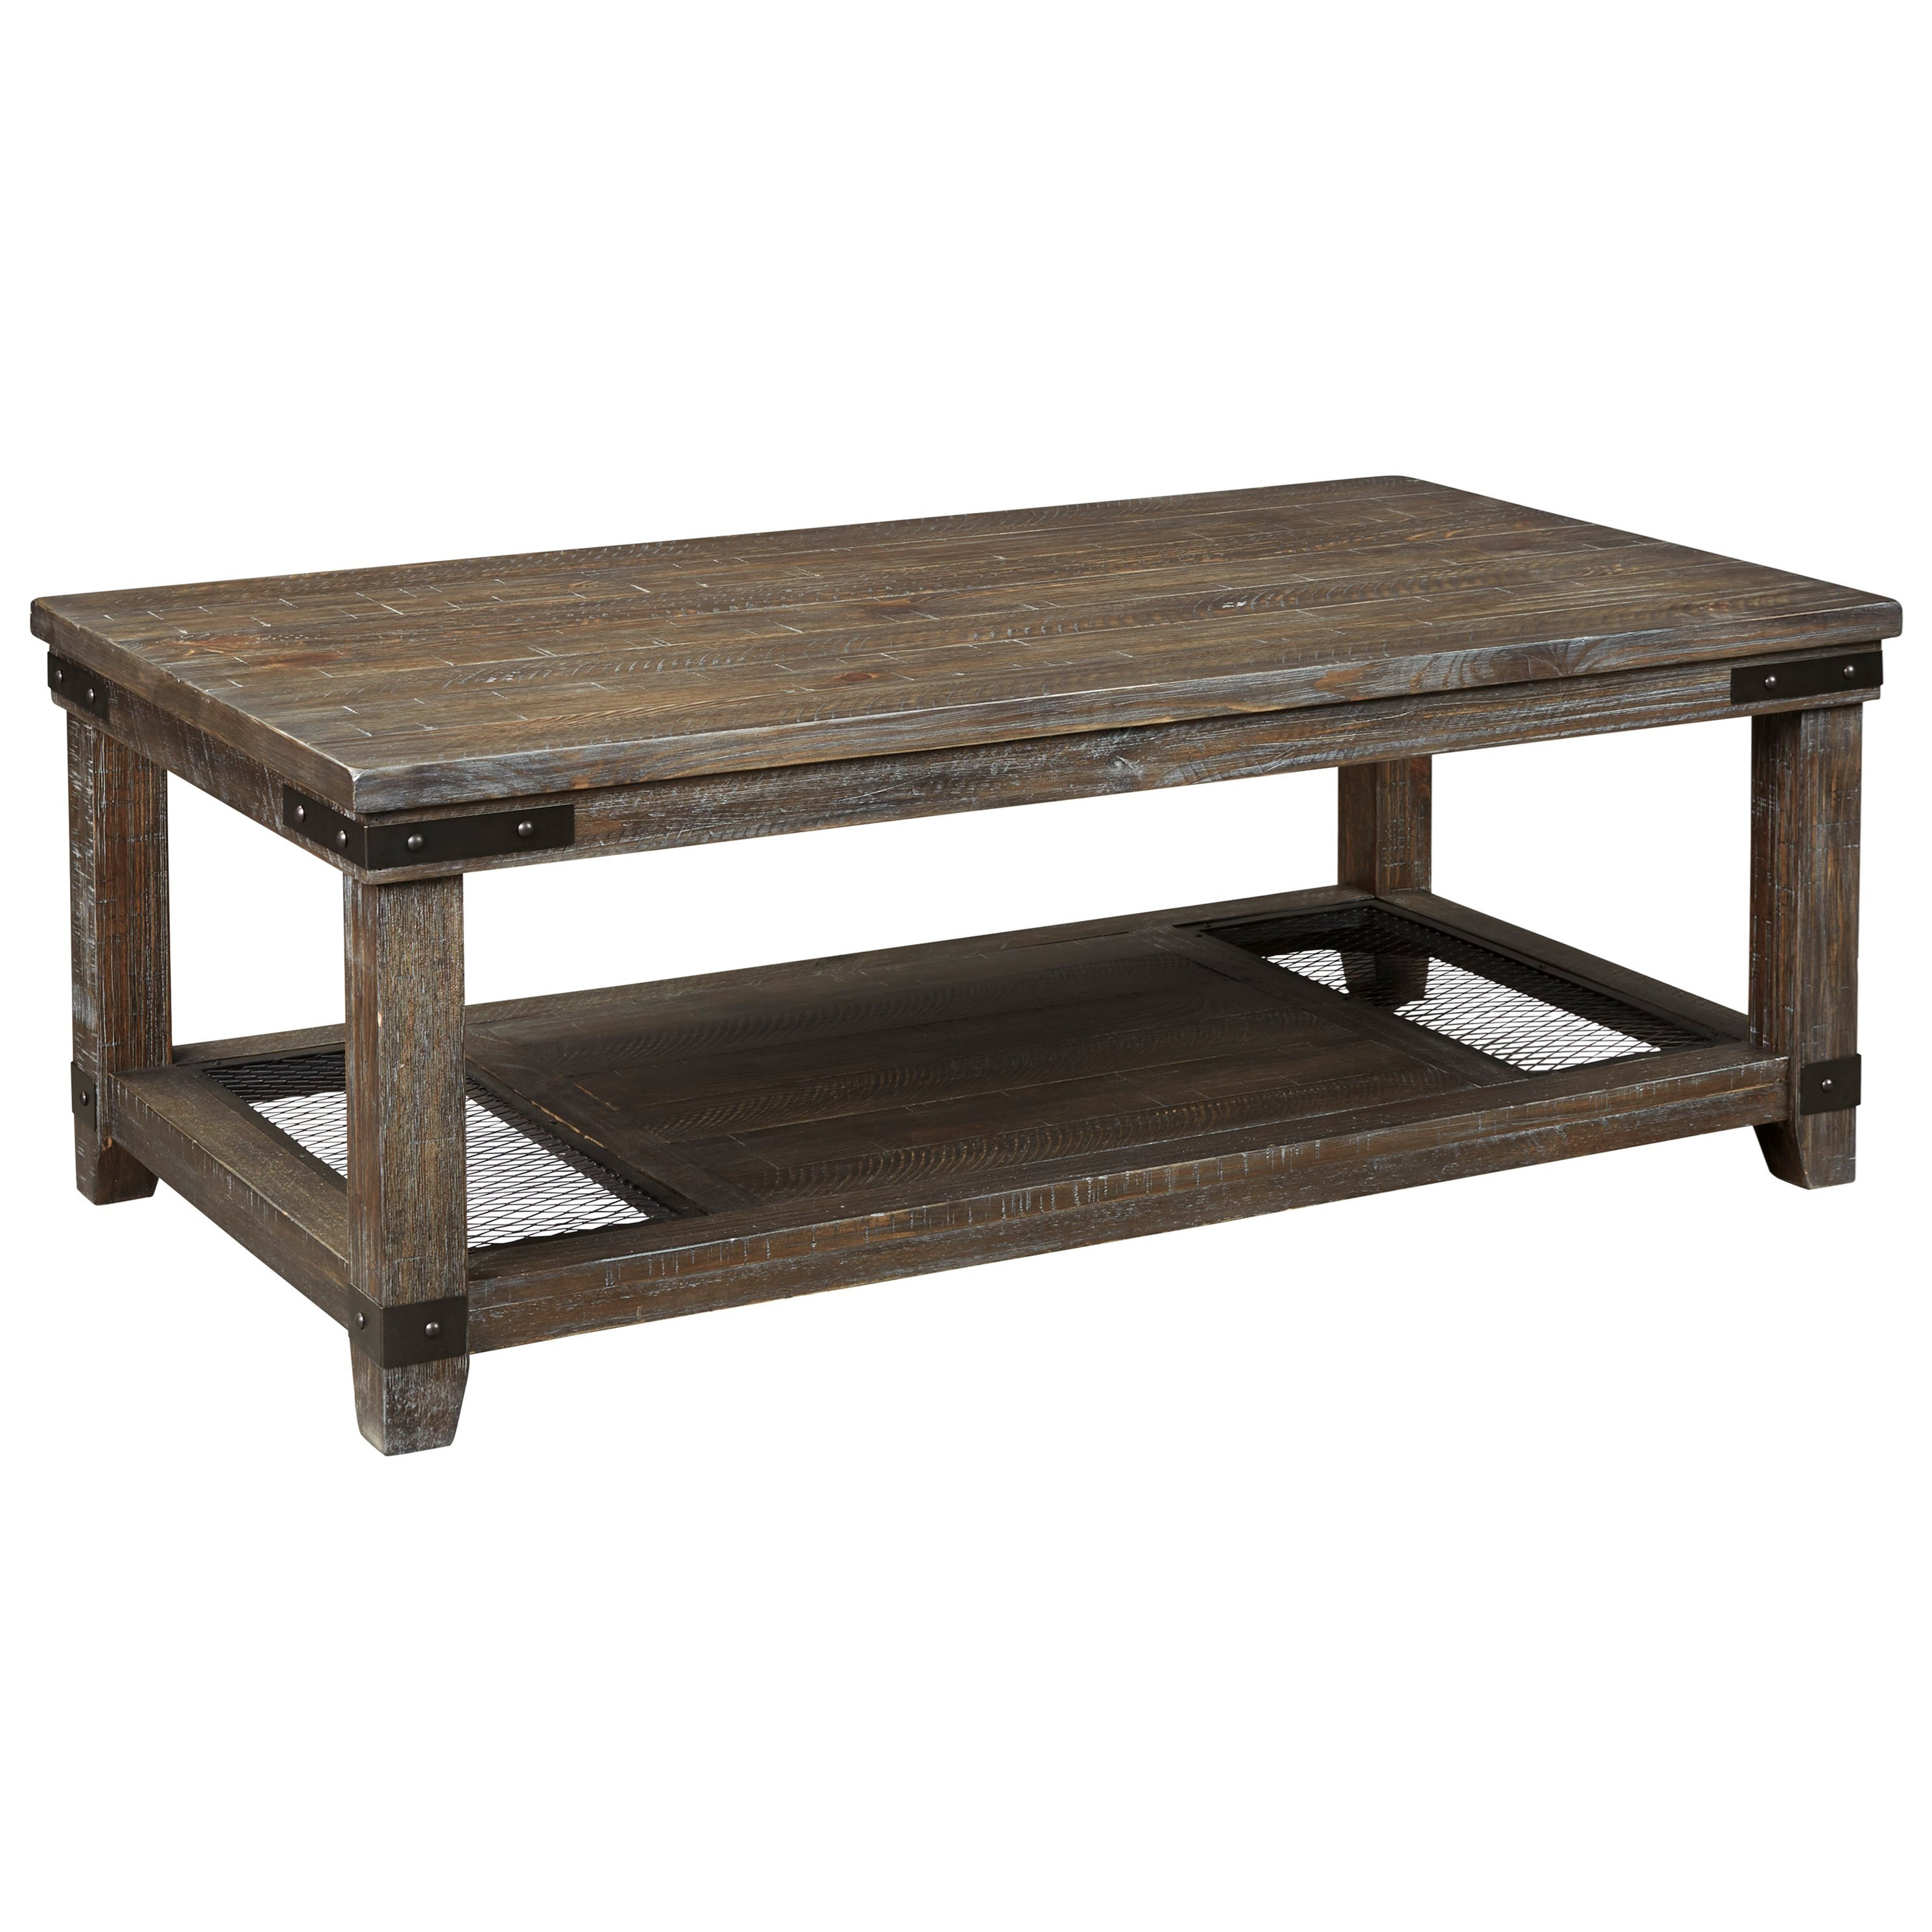 Rustic Rectangular Cocktail Table with Metal Accents